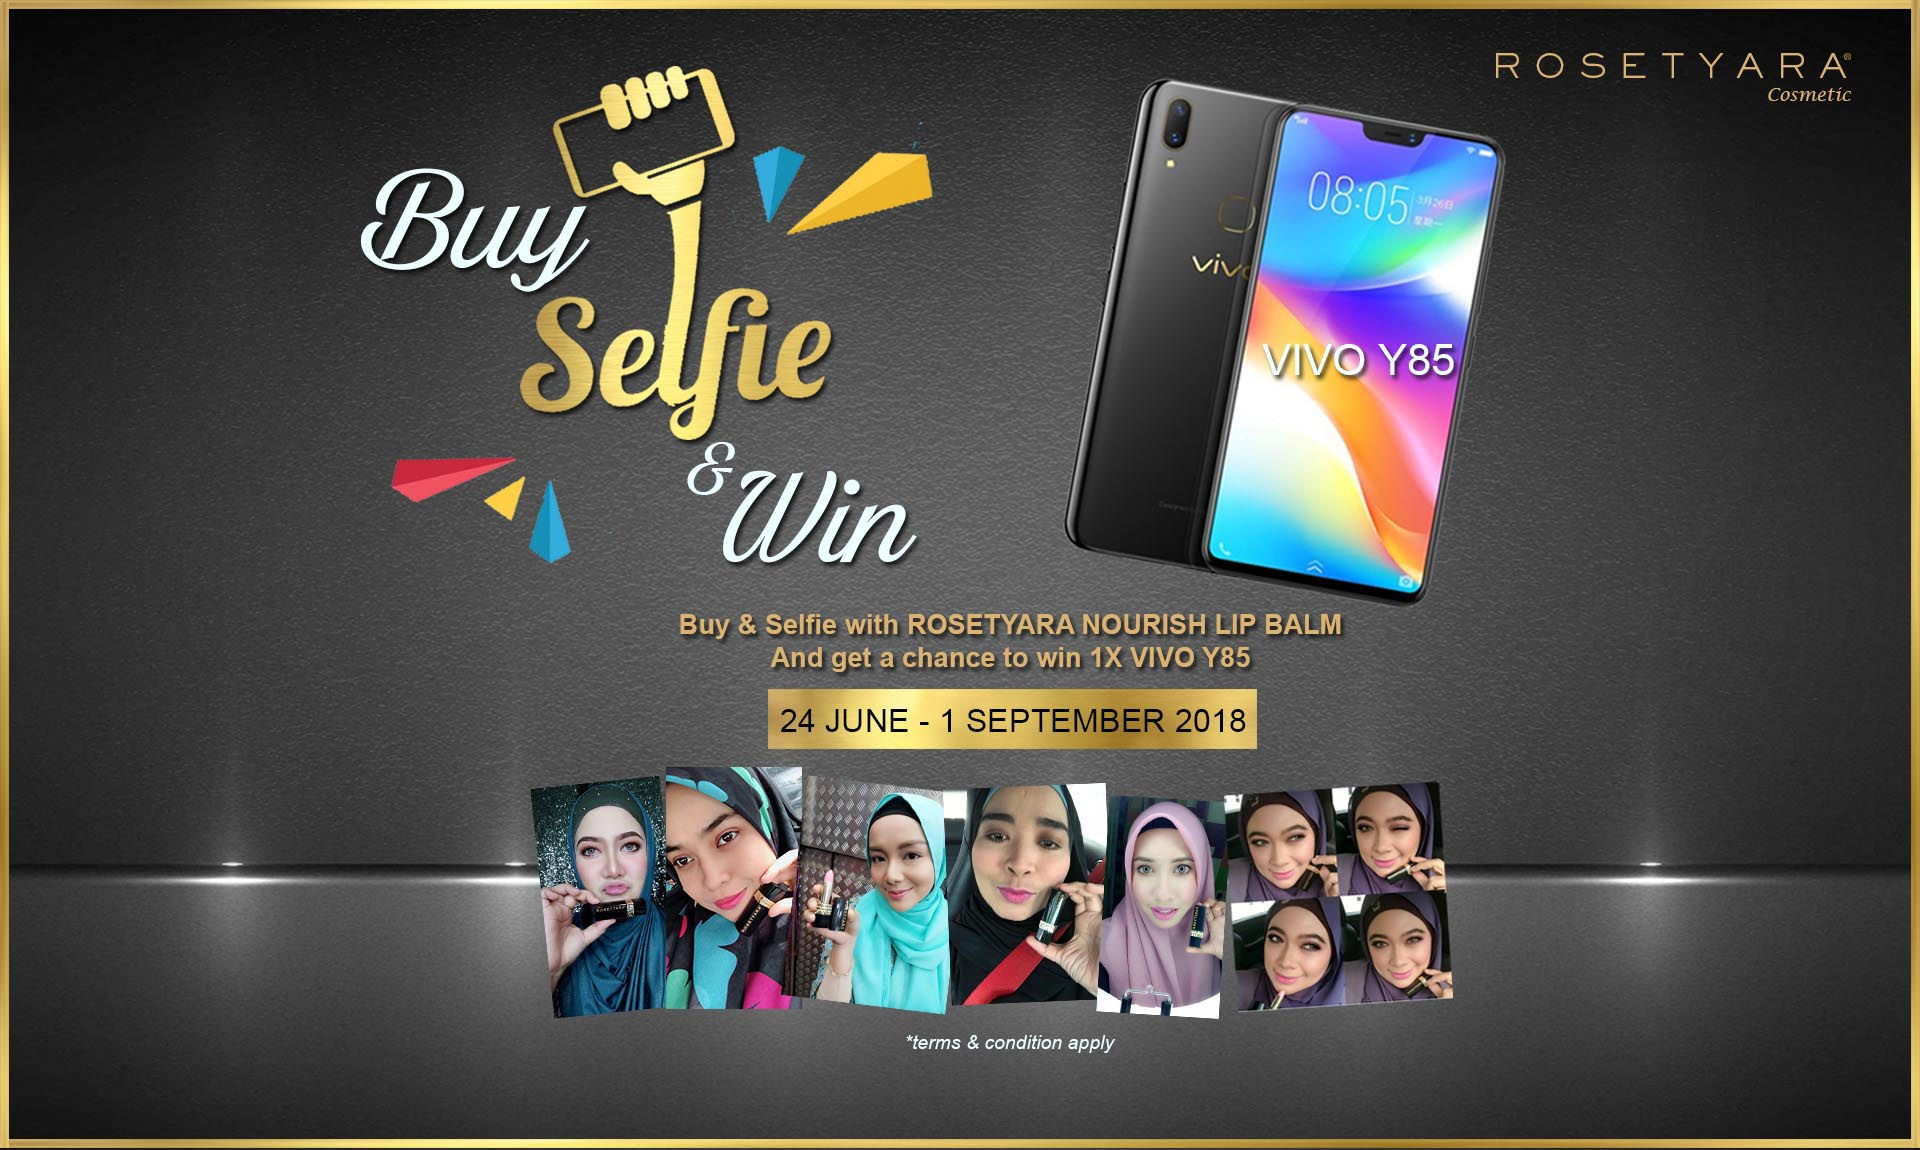 BUY SELFIE & WIN